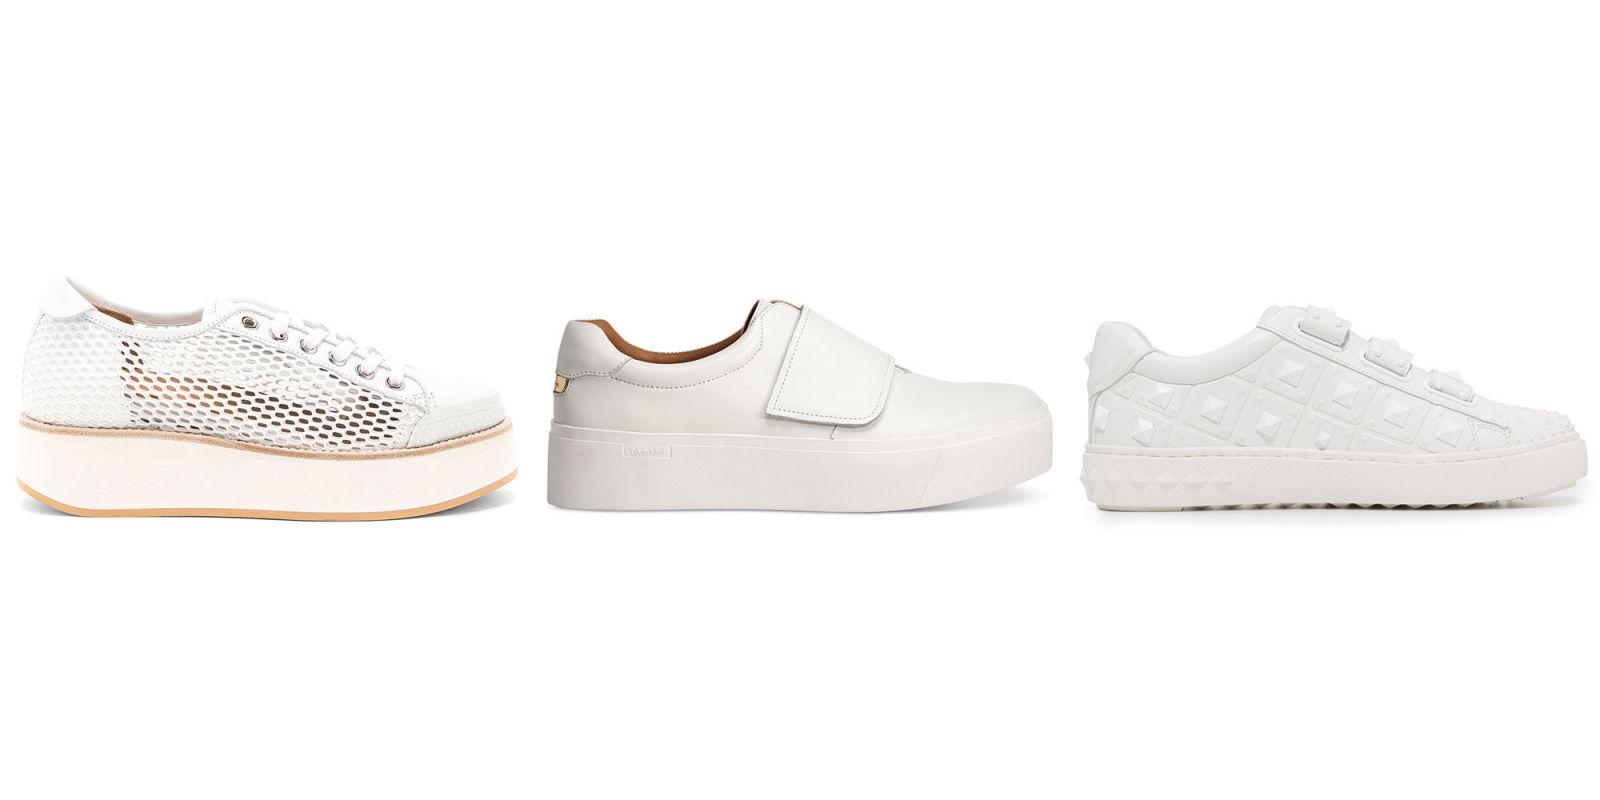 18 White Sneakers for Women That Go With Everything | Travel